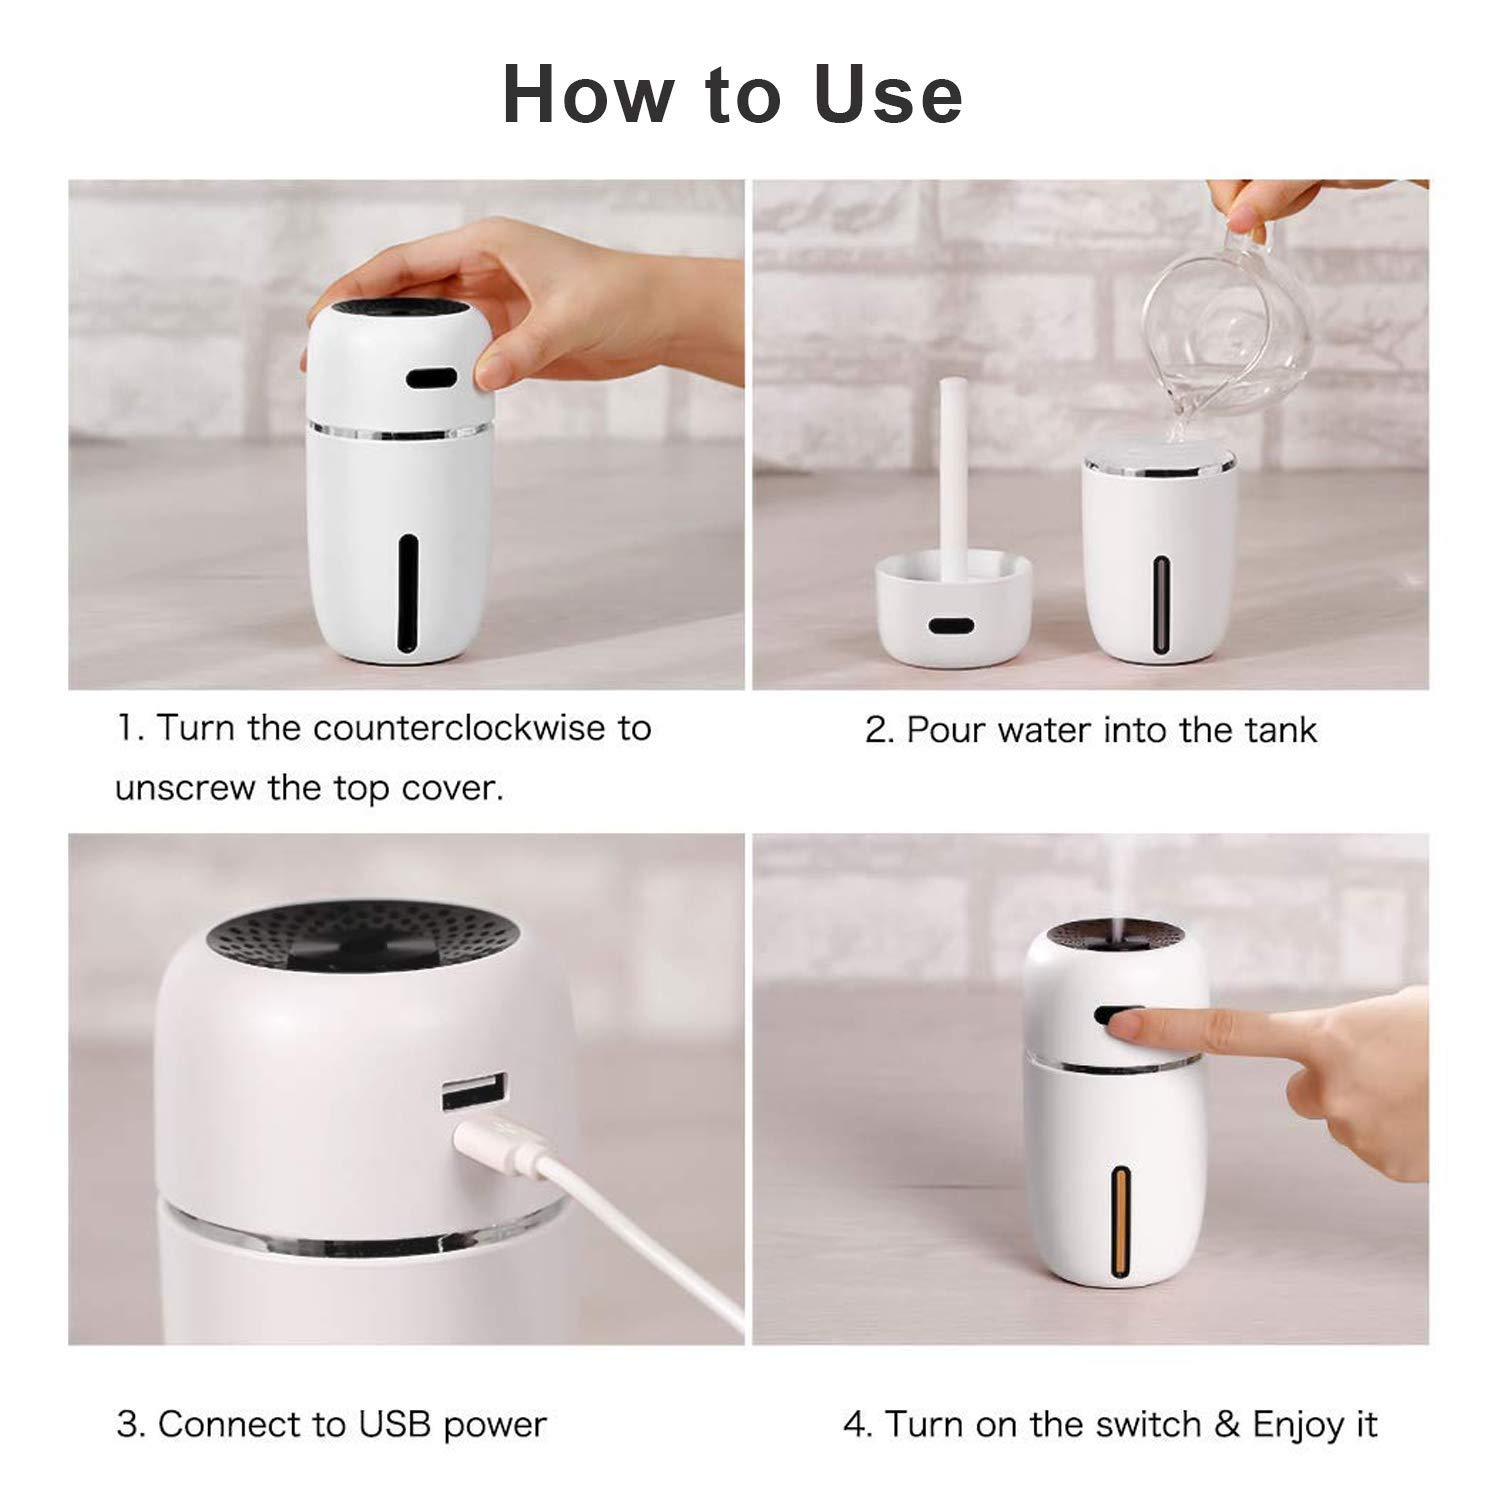 200ml Small Desk Potable Ultrasonic Humidifier with USB Port,7 Colors Night Light,Adjustable Mist Mode,Auto-Off,Whisper Quiet Car Humidifiers for Bedroom,Office Nestar USB Mini Humidifier